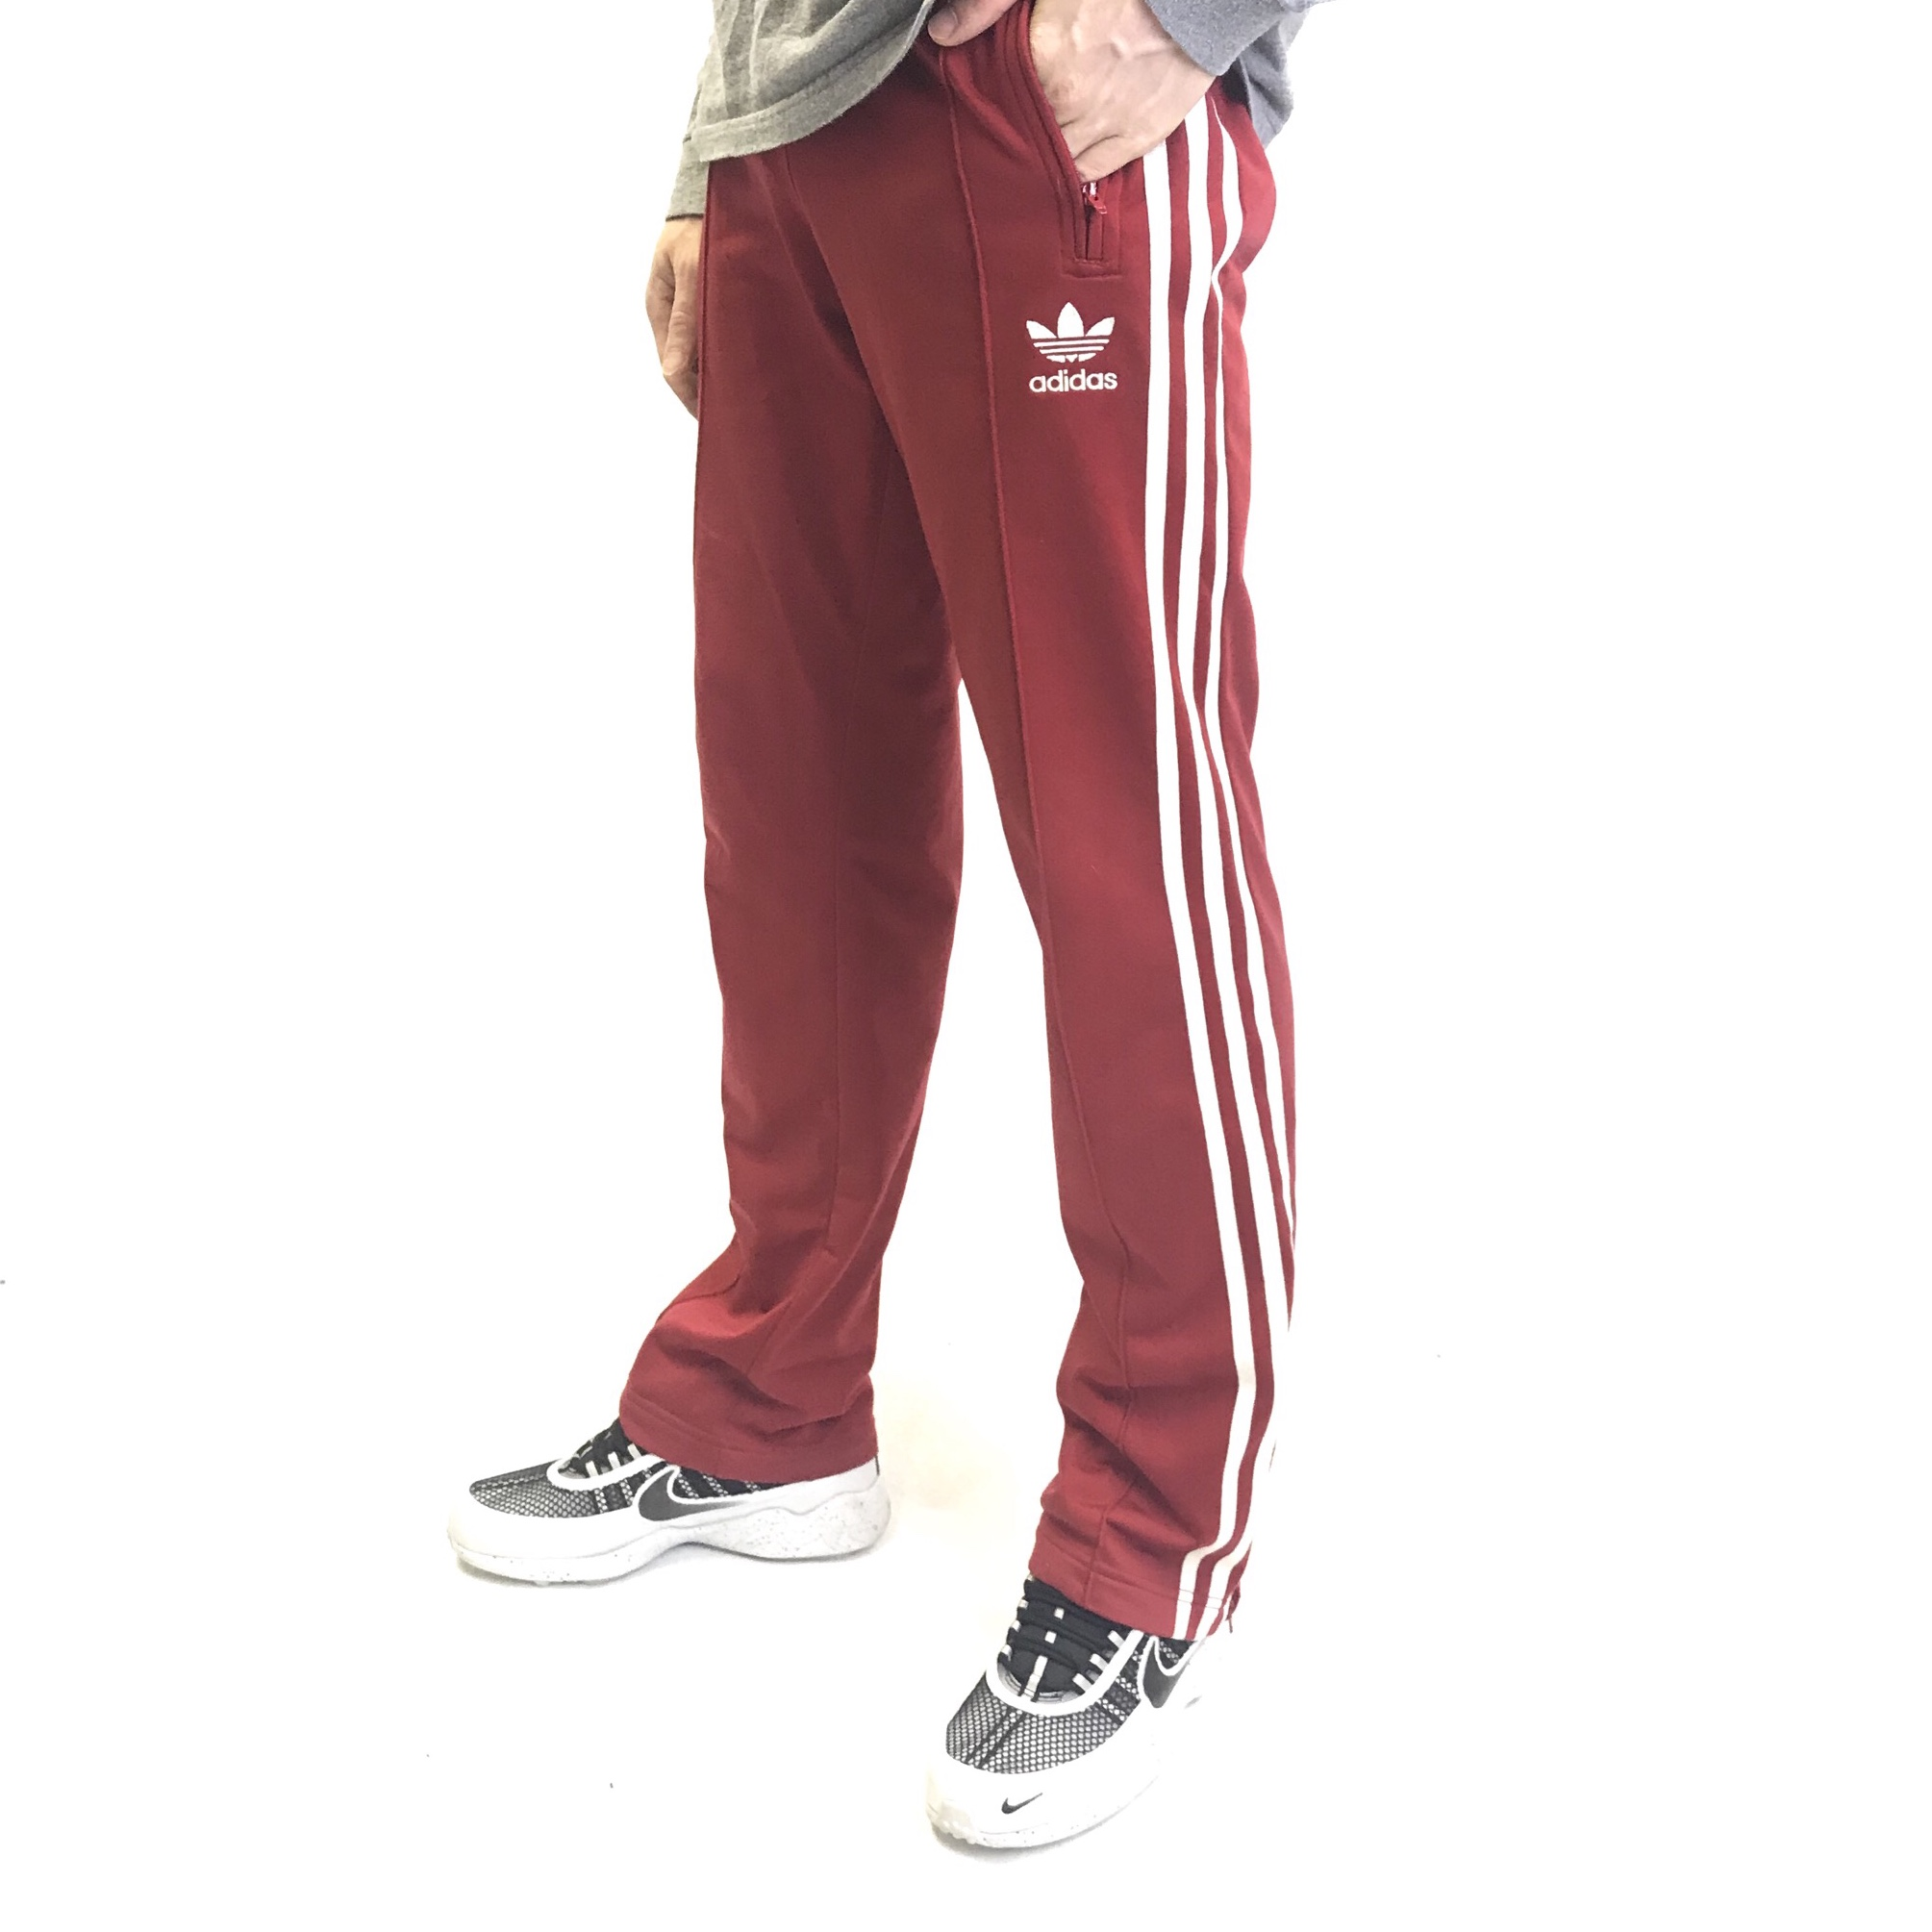 Vintage adidas track pants fit as a small to Depop